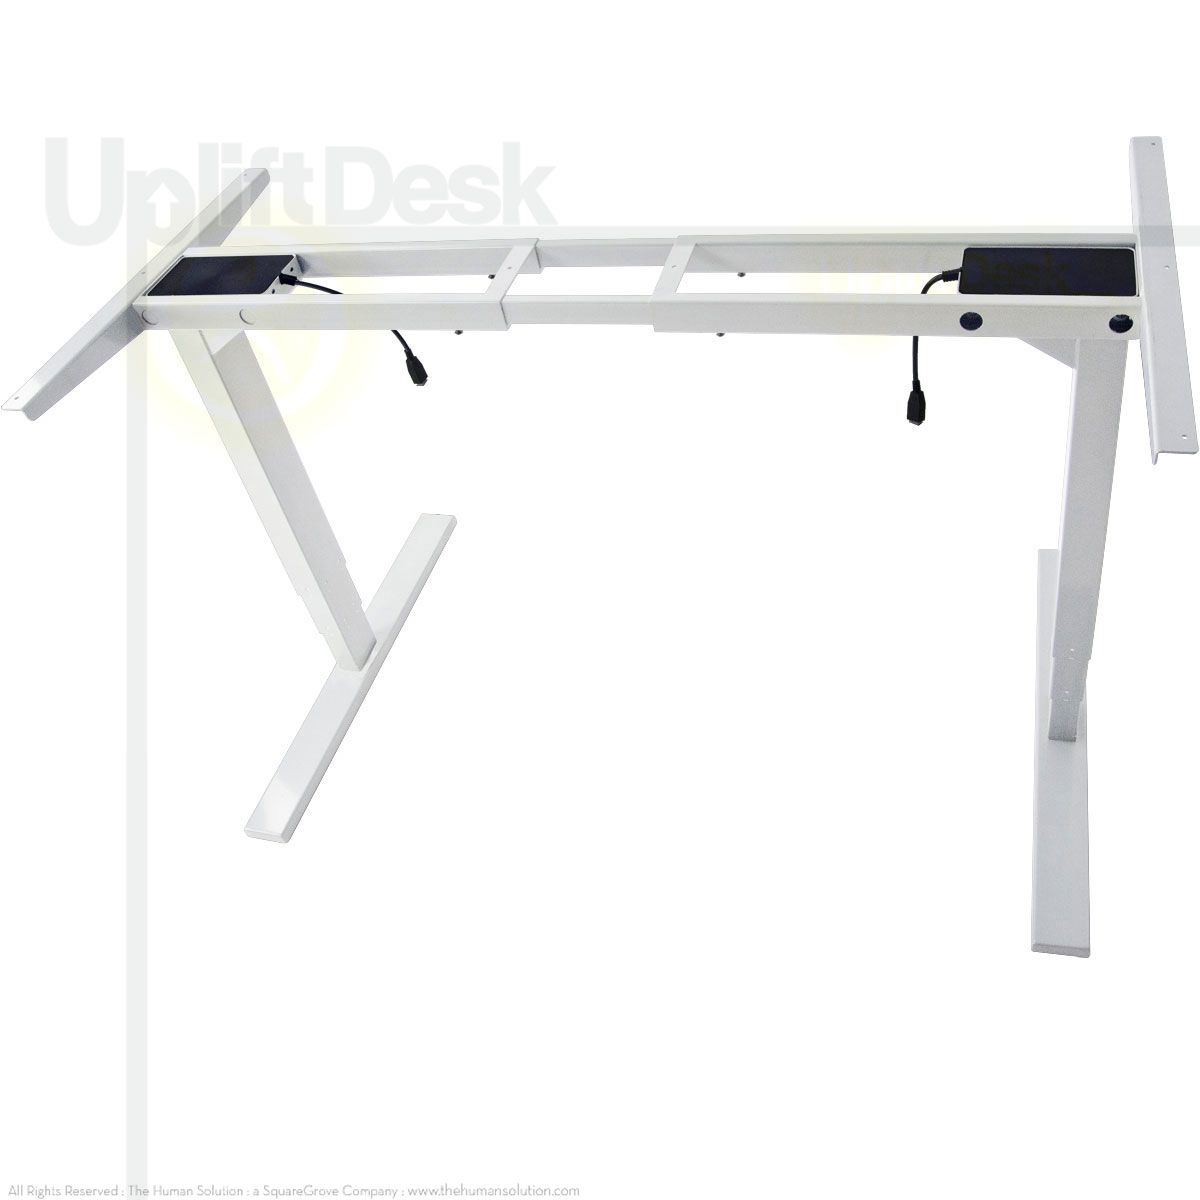 The uplift heightadjustable standup desk base stone white